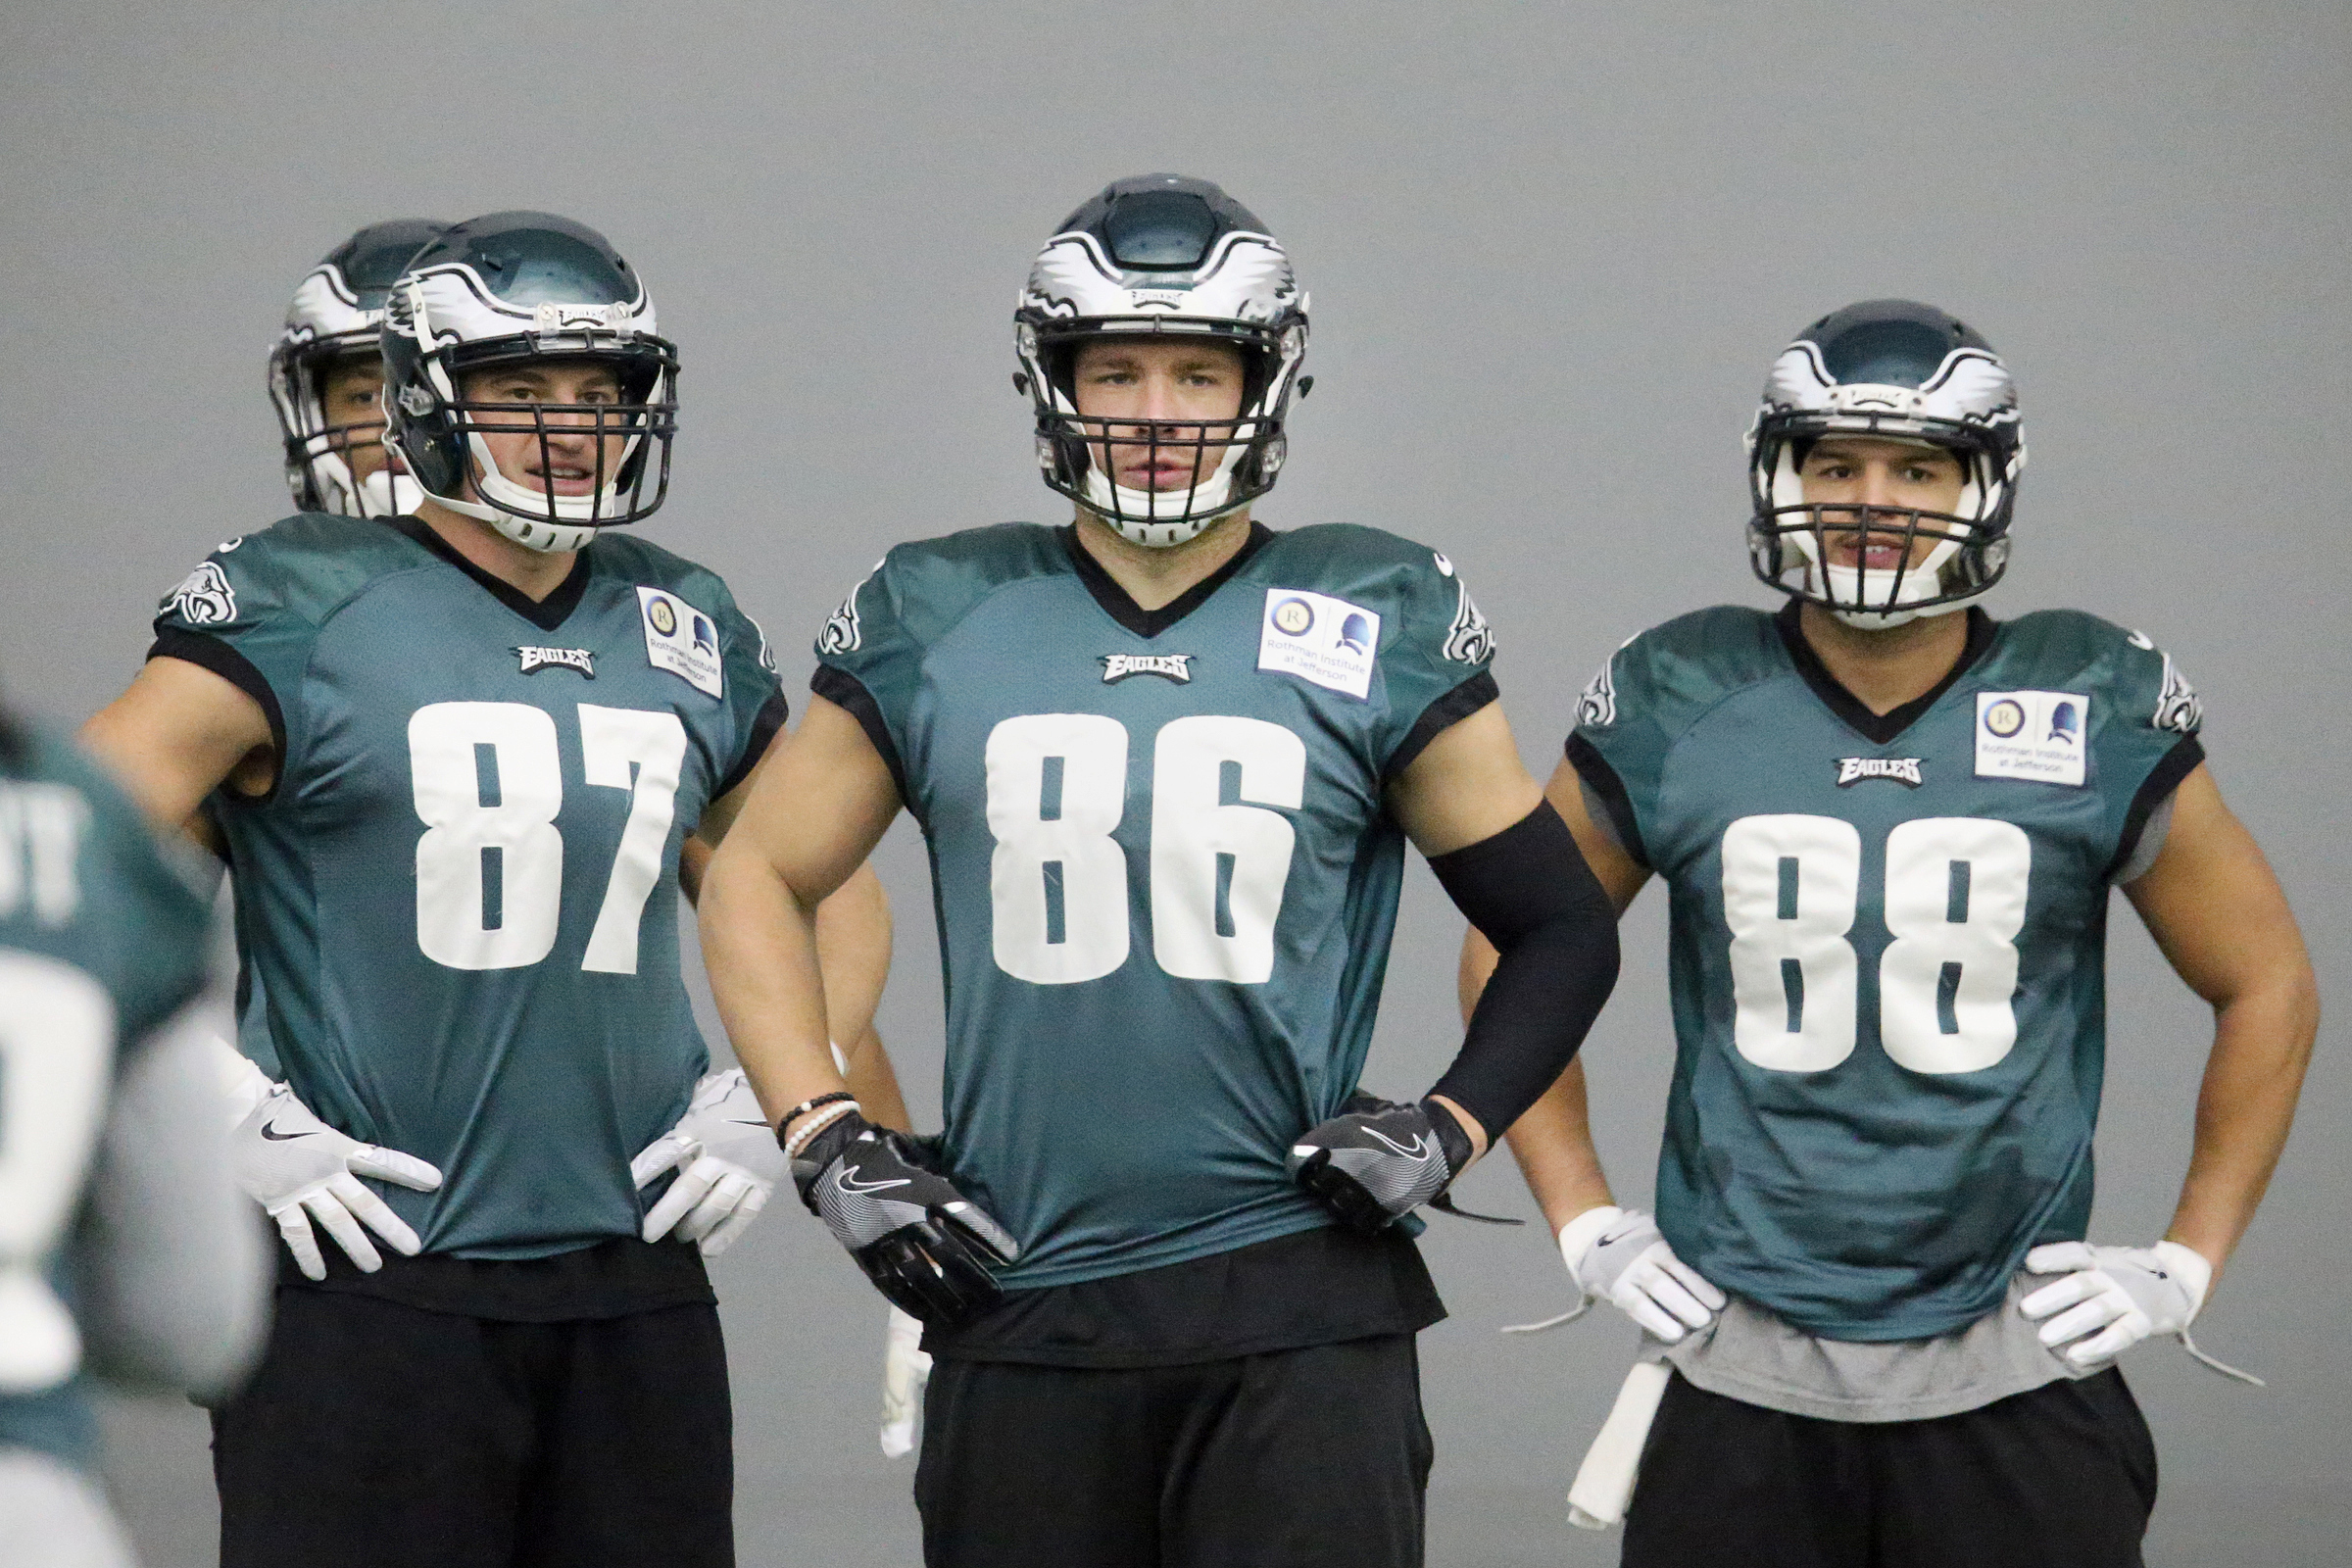 Zach Ertz (86) stands between former teammates Brent Celek (87) and Trey Burton (88) during an Eagles practice the week before the Super Bowl.